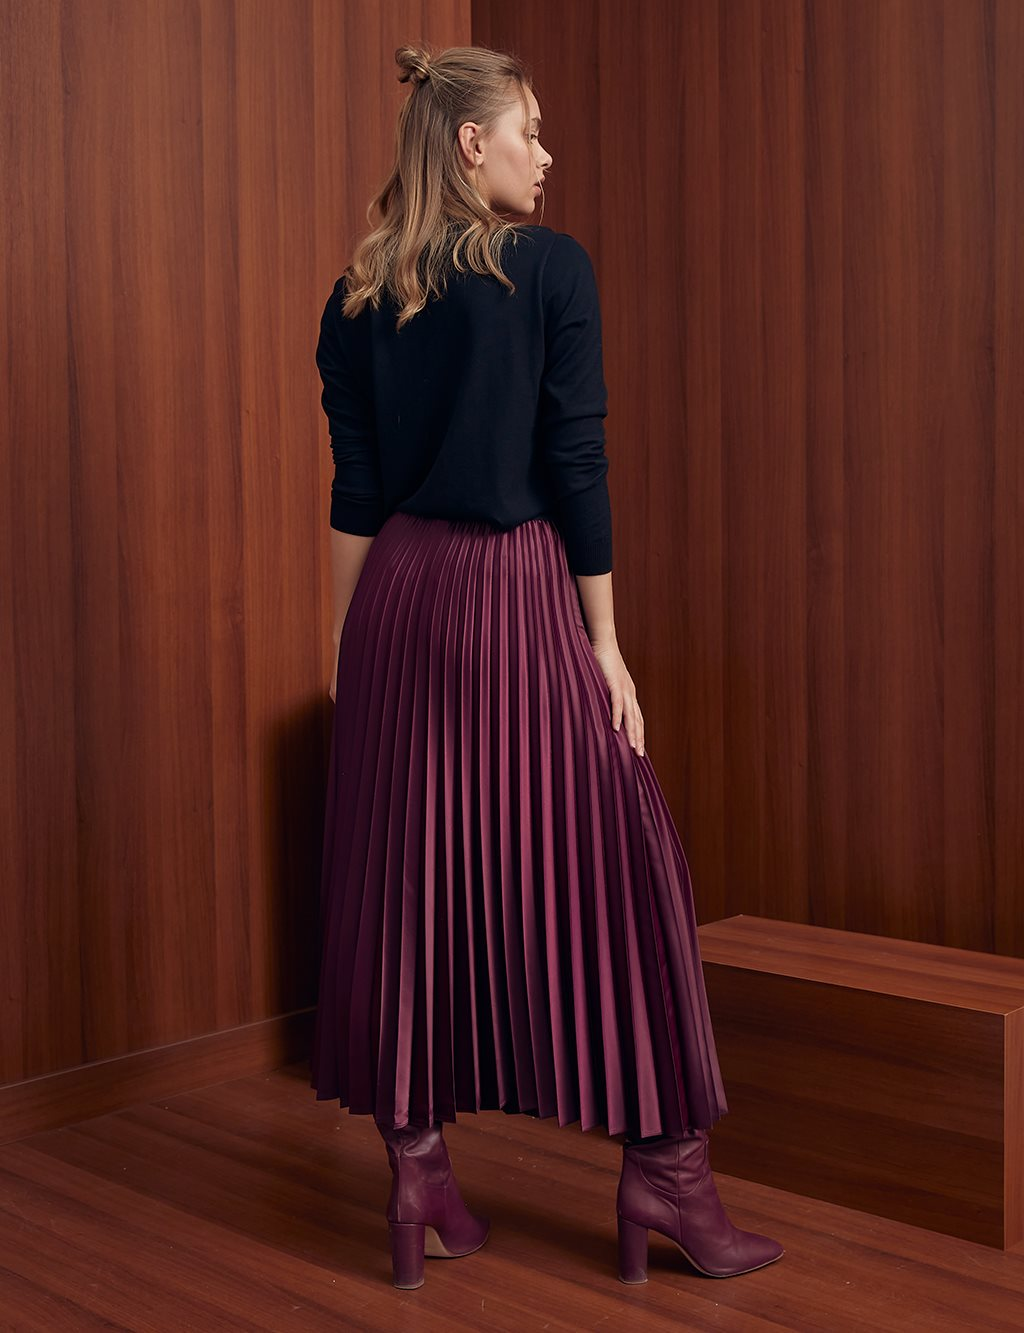 Inside Satin Pleated Skirt A20 12046 Burgundy